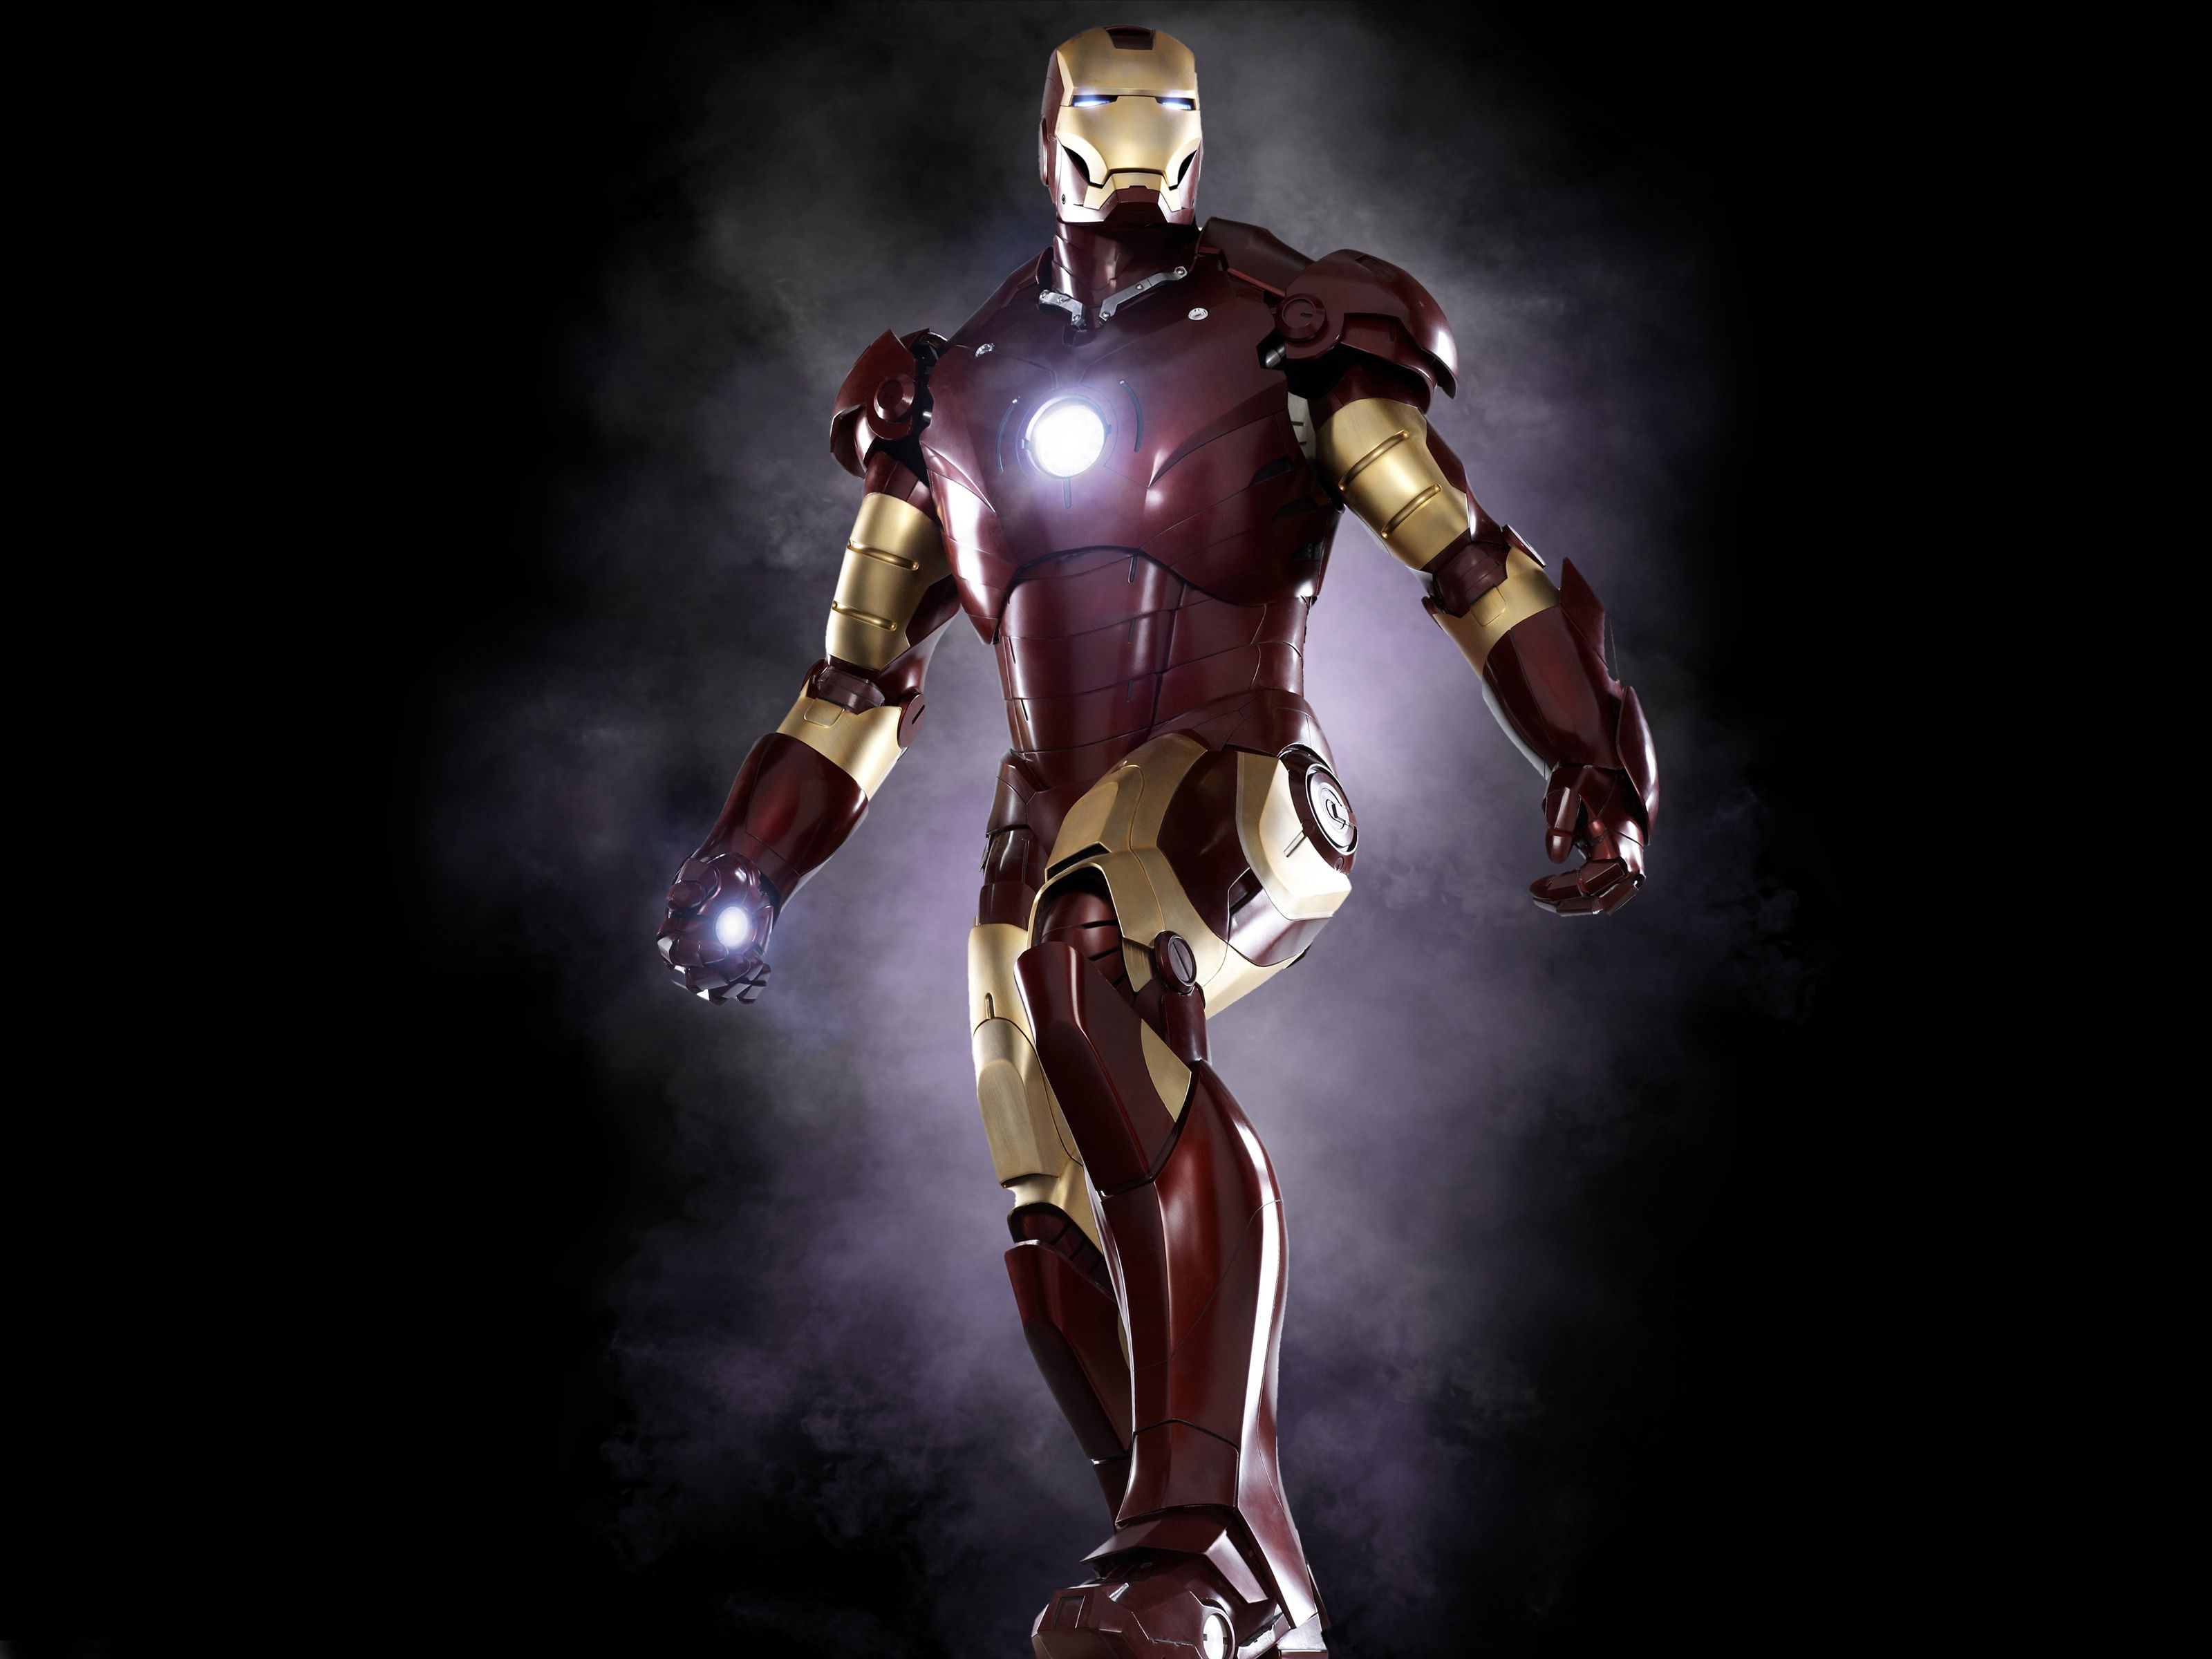 iron man h d wallpaper collection for free download | hd wallpapers